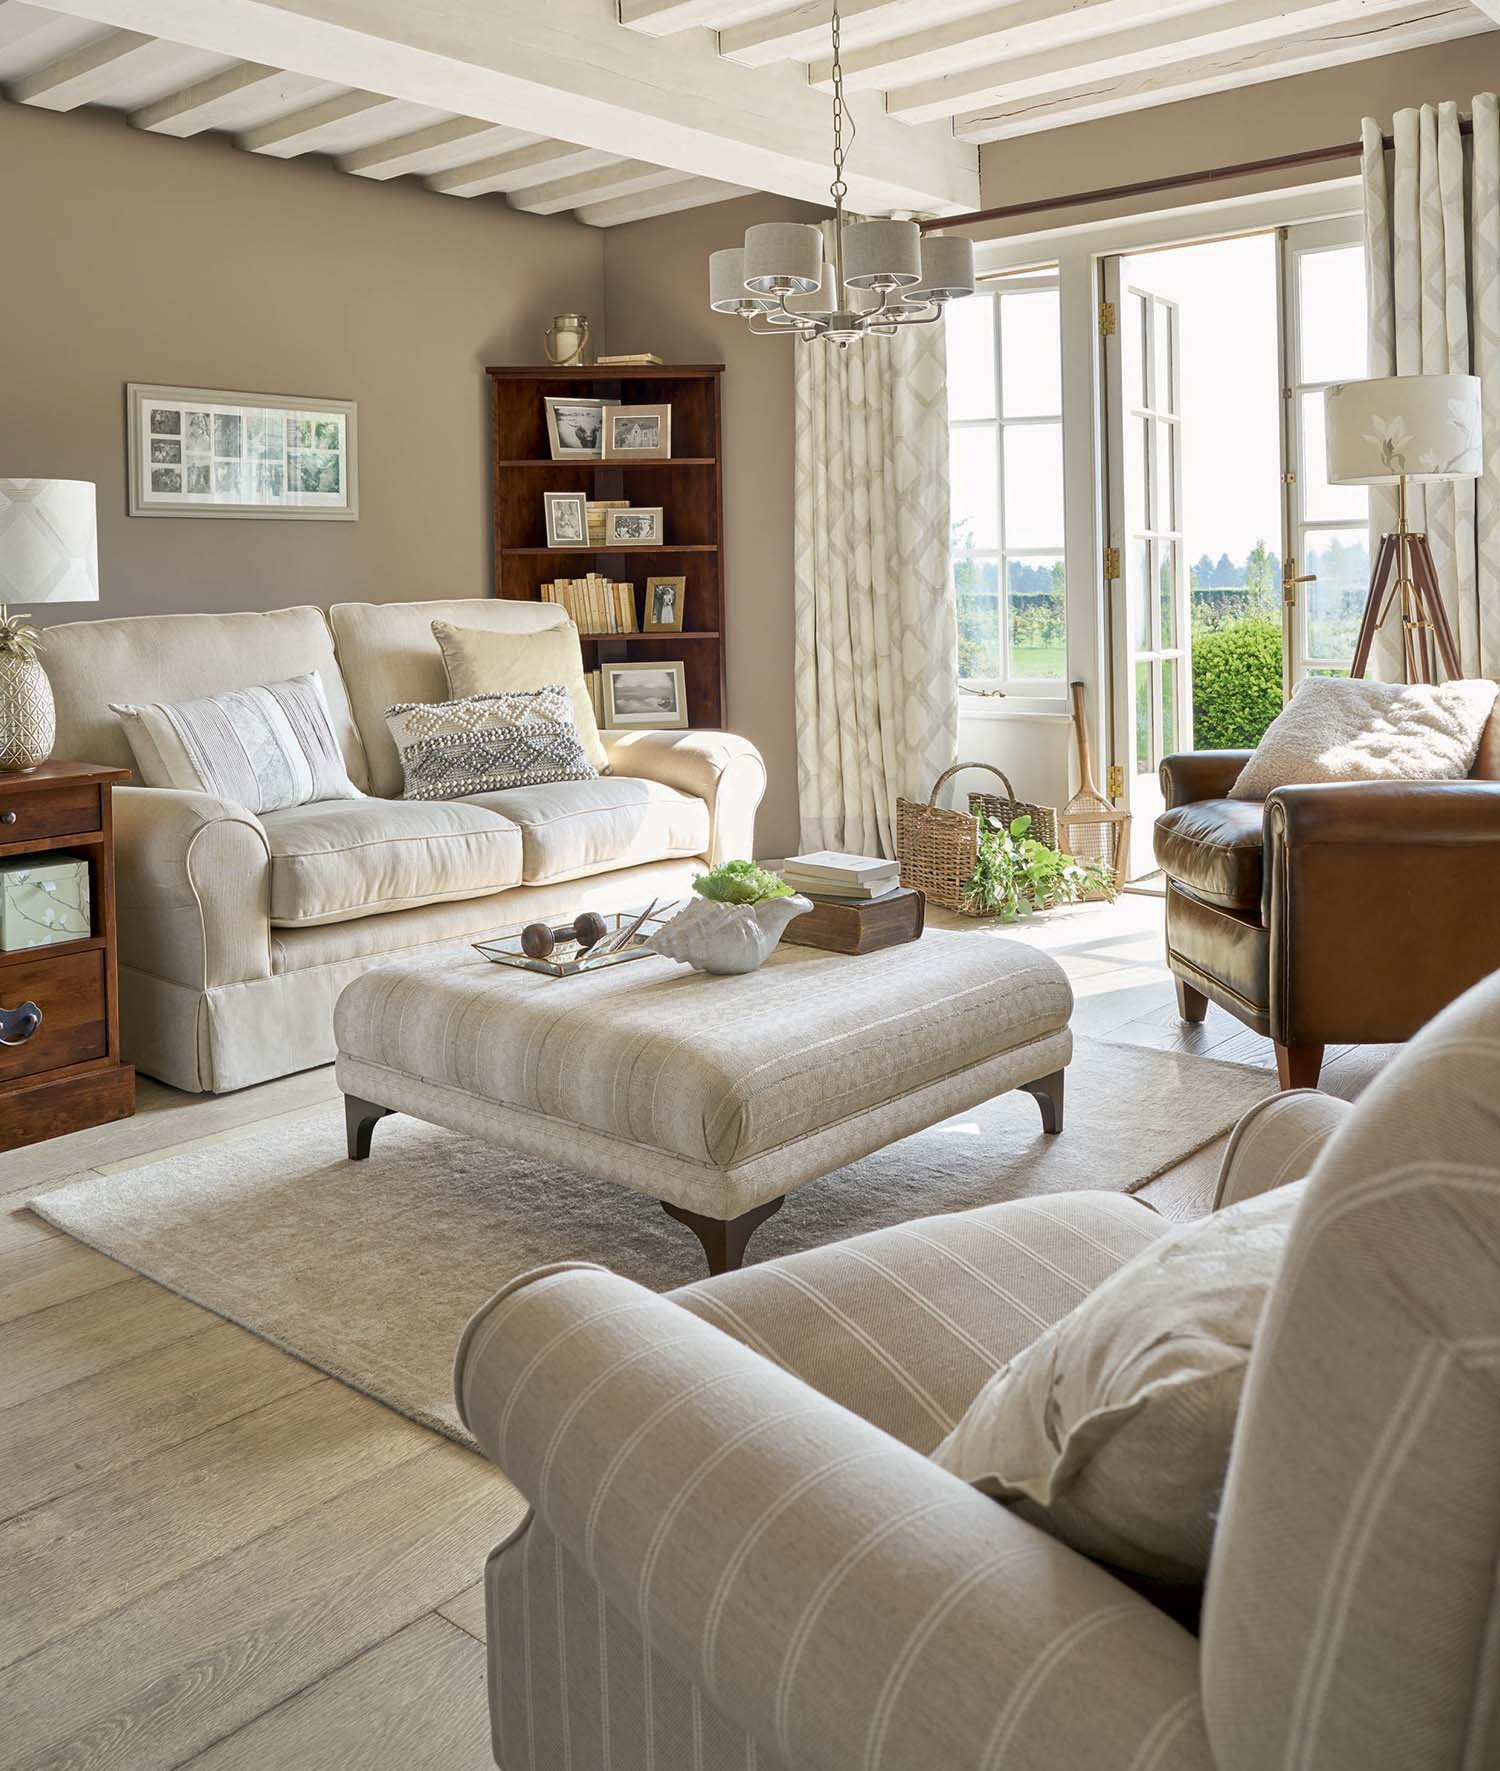 Laura Ashley On Twitter If You Need A Soft Cosy Sofa Then The